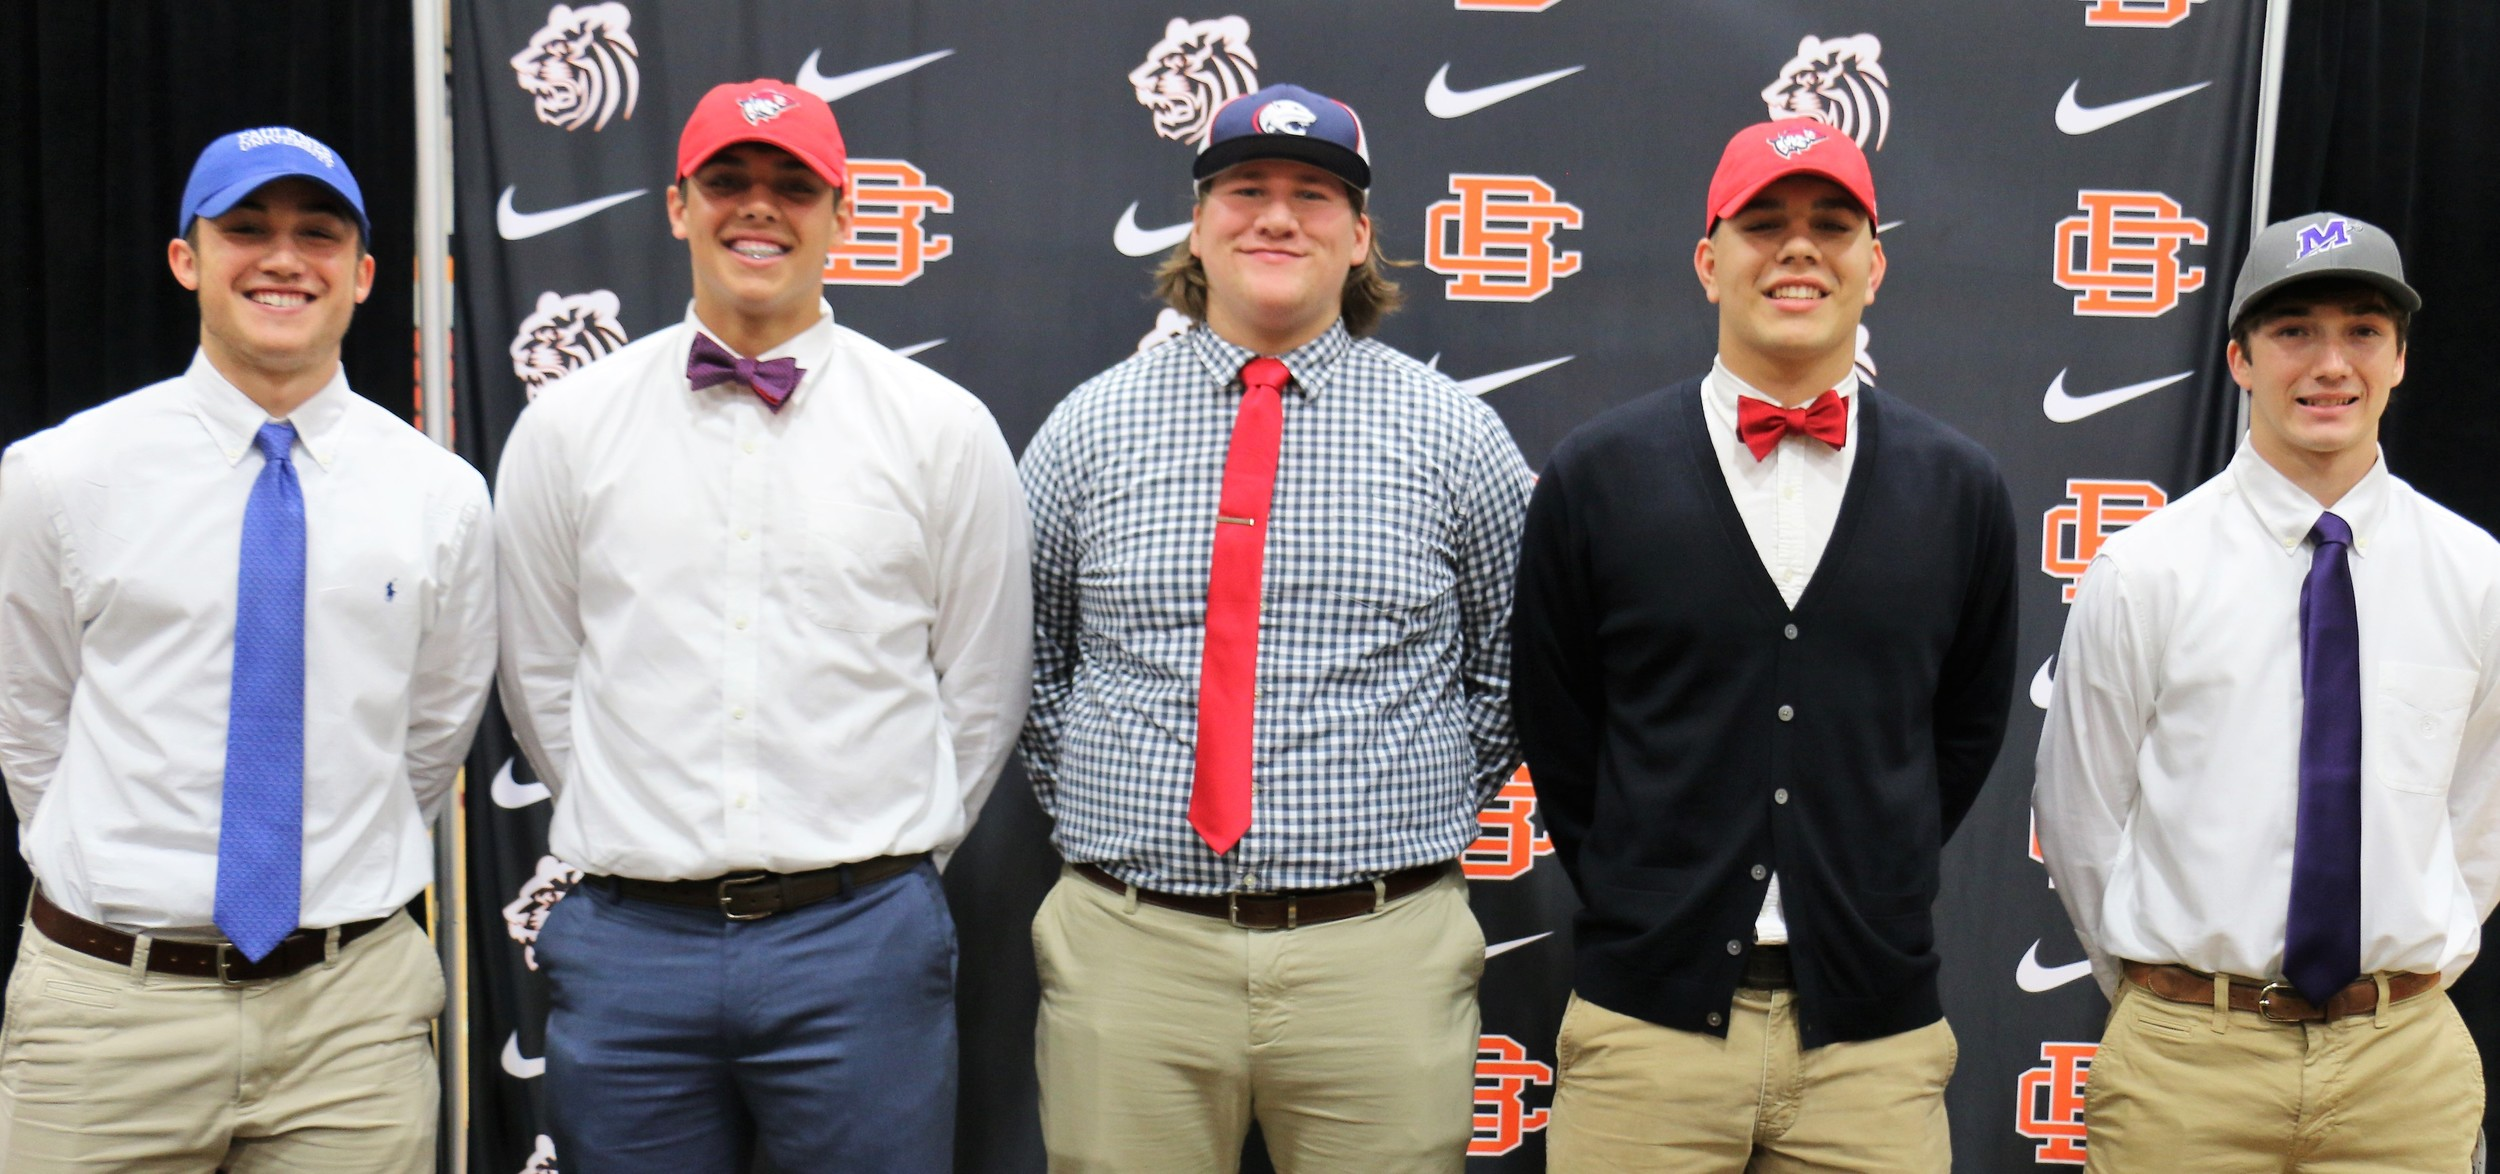 From left, Eli Powell, Chase Overstreet, Tyler Jernigan, Cade Stamps and DJ Lamkin at Feb. 8 BCHS signing ceremony.